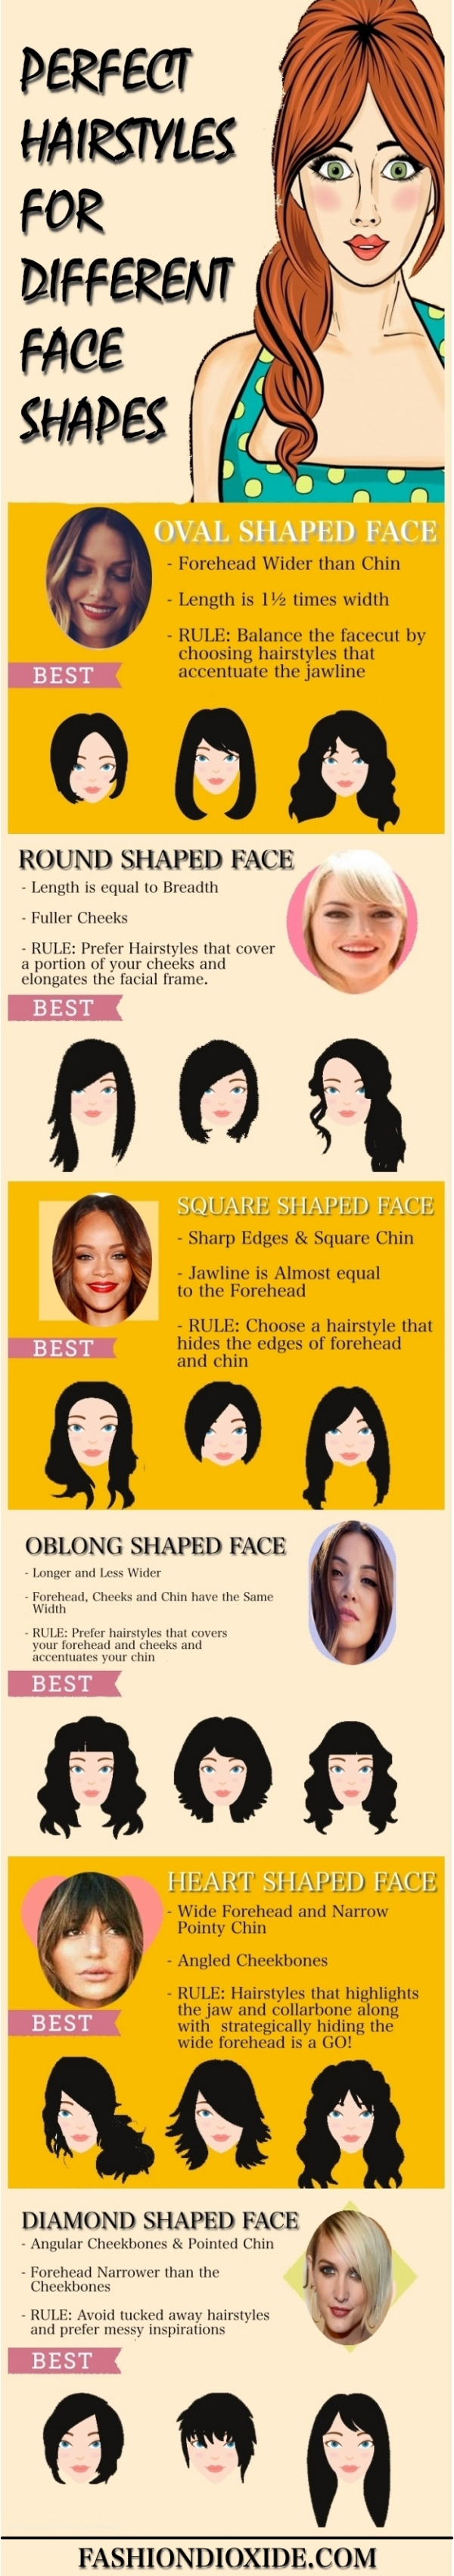 perfect hairstyles for different face shapes - fashiondioxide